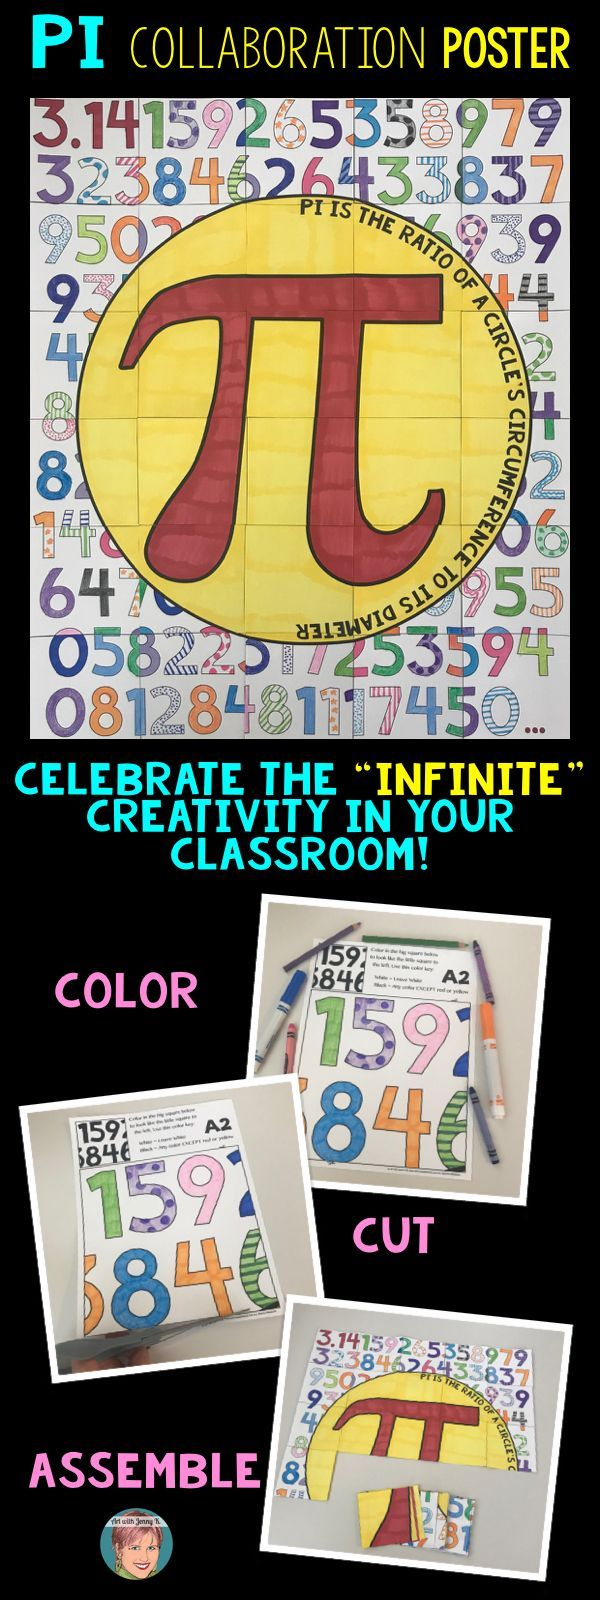 Pi Day Activity Pi Day Coloring Classroom Collaboration Poster Math Projects Creative Classroom Pi Day [ 1600 x 600 Pixel ]